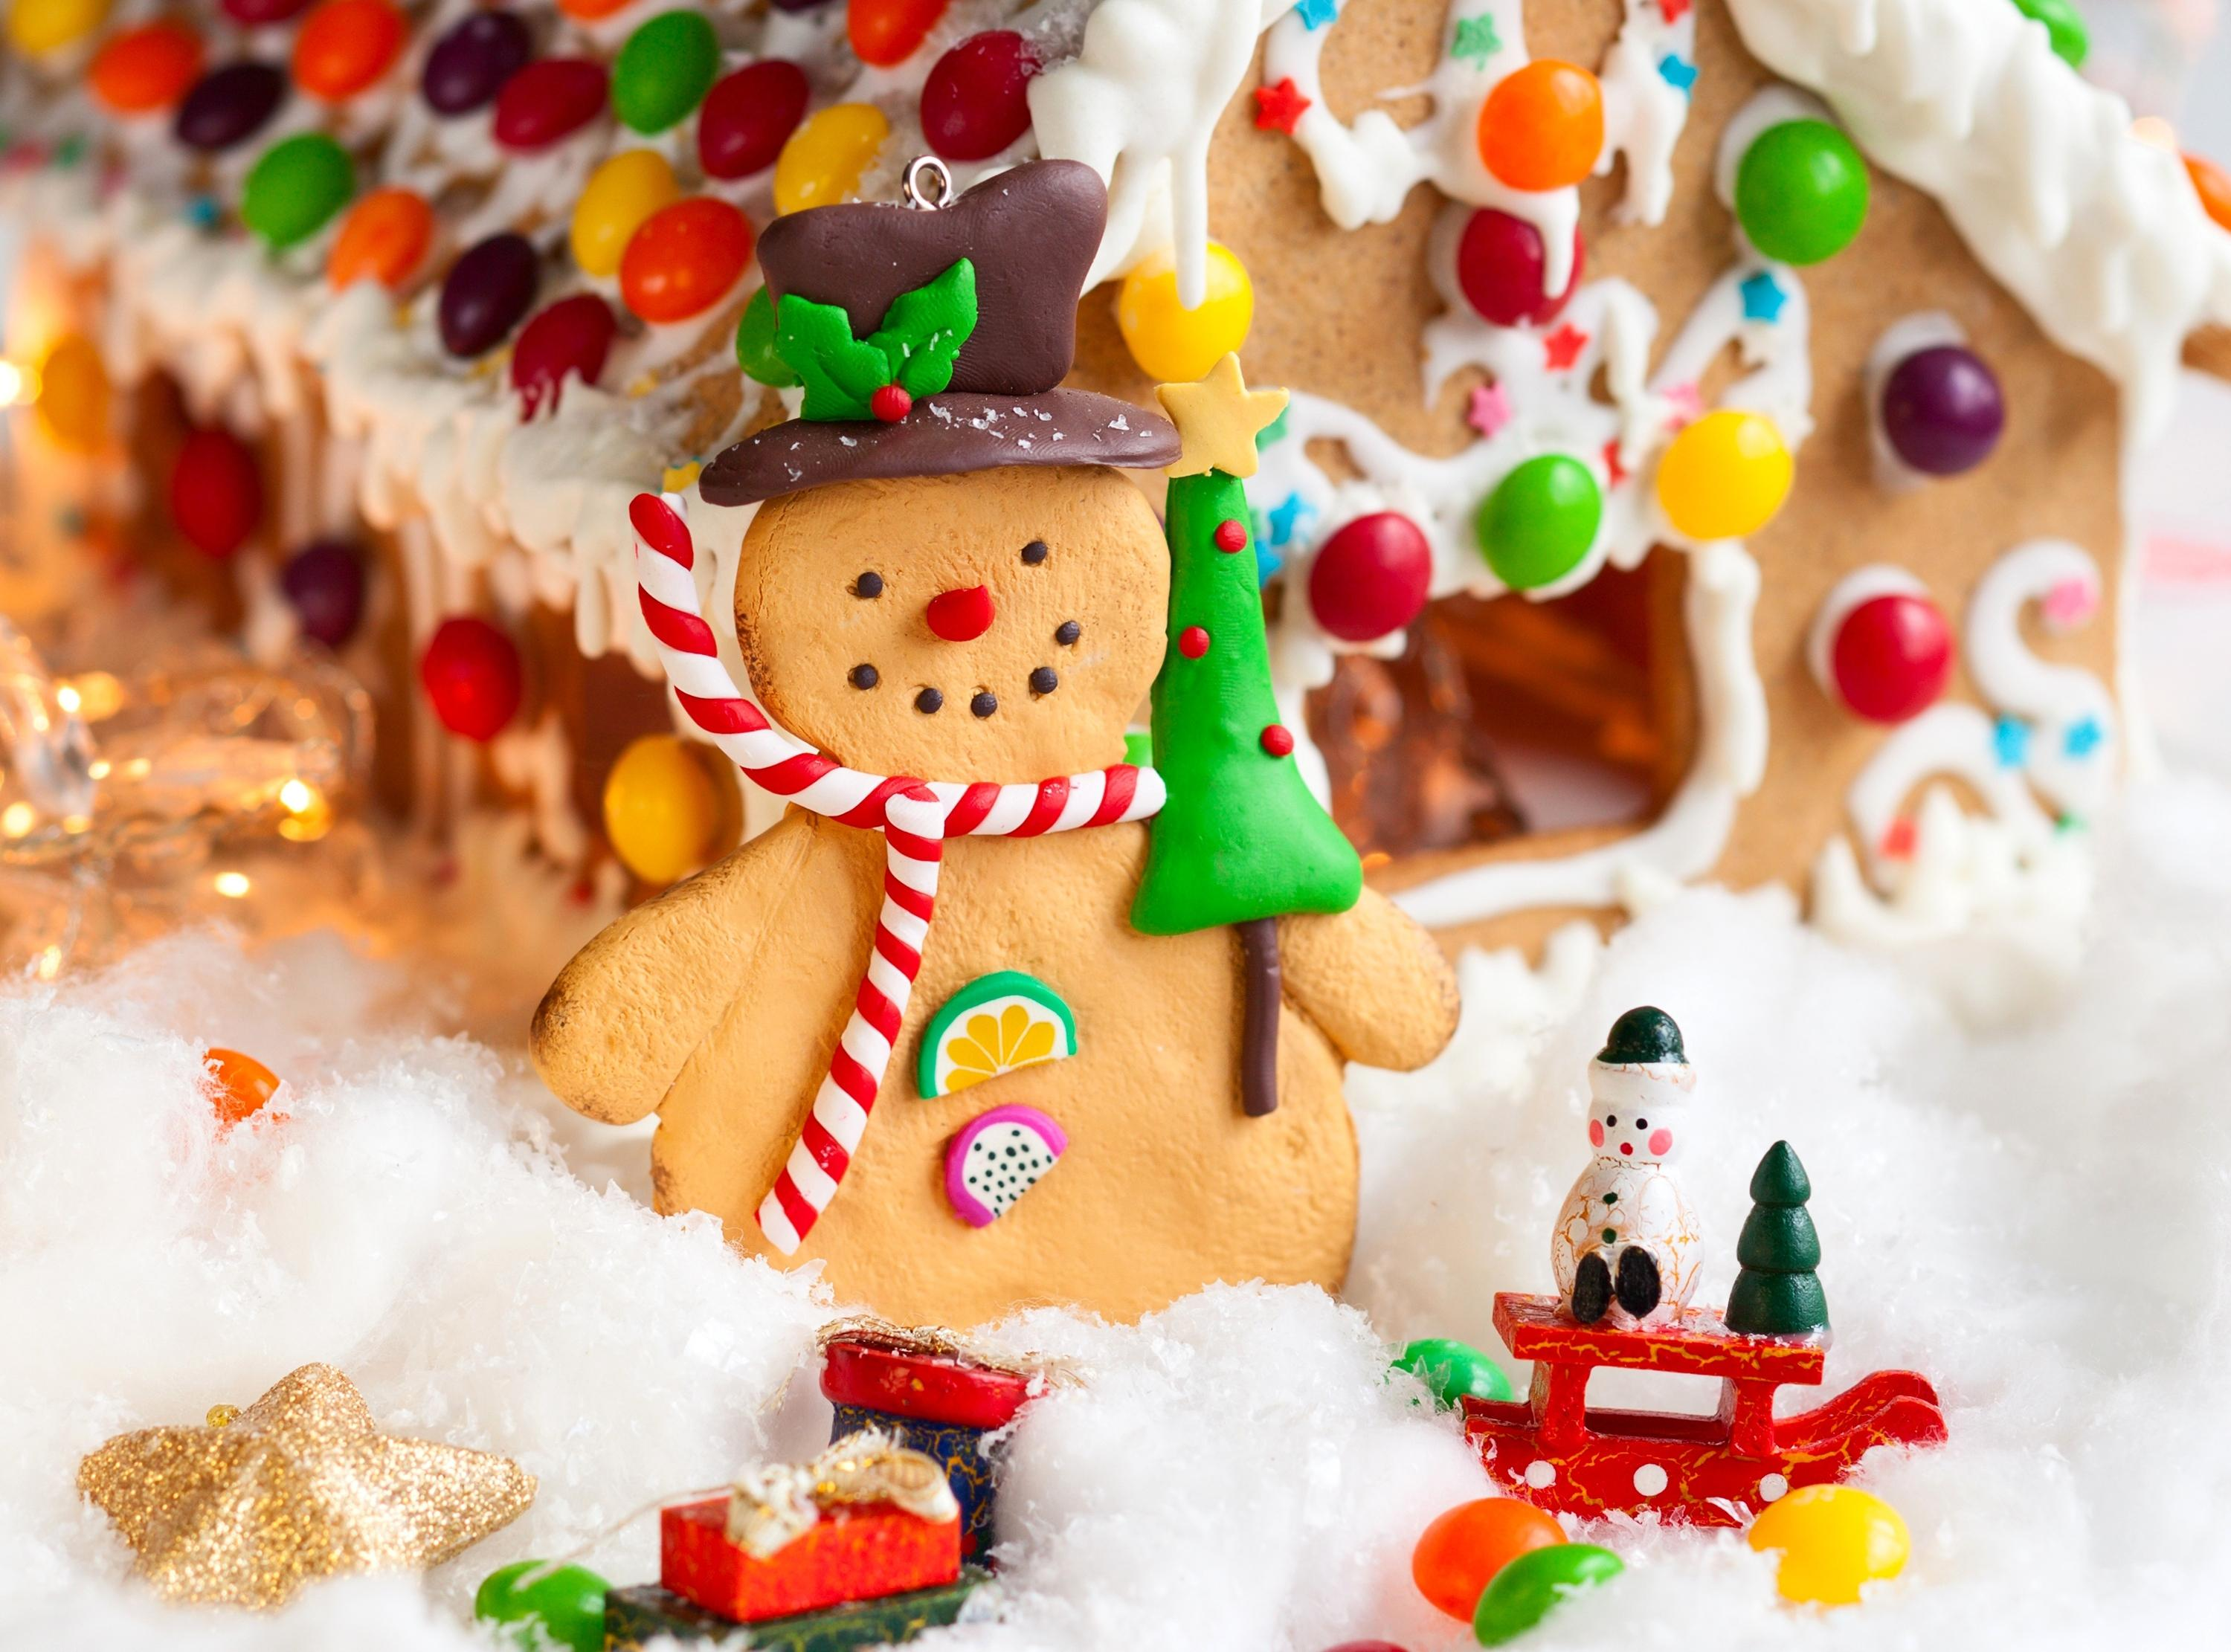 Baking Cookies Candy Holidays Christmas Food wallpaper 3000x2222